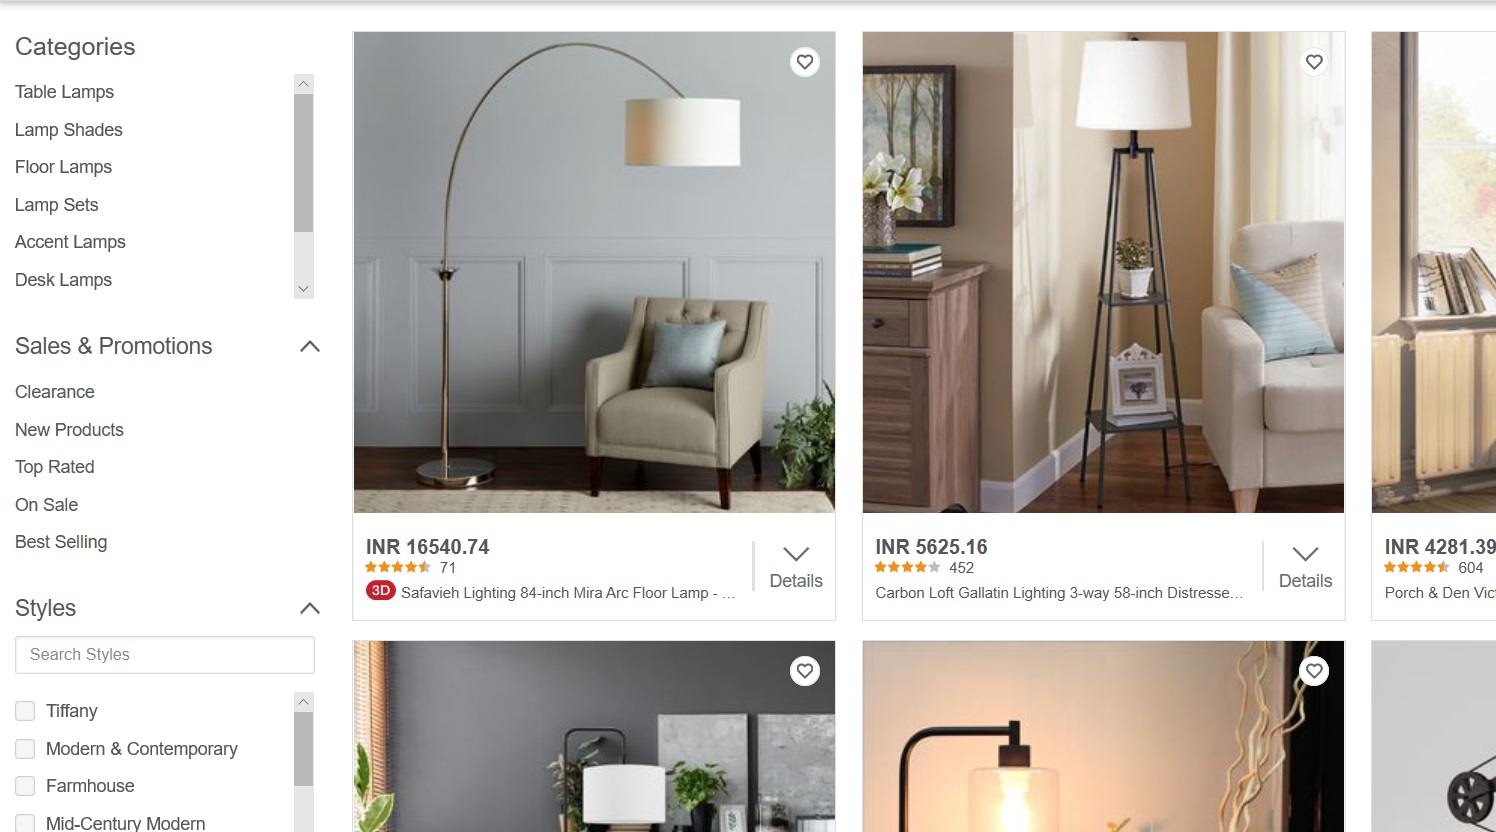 Search results for lamps.